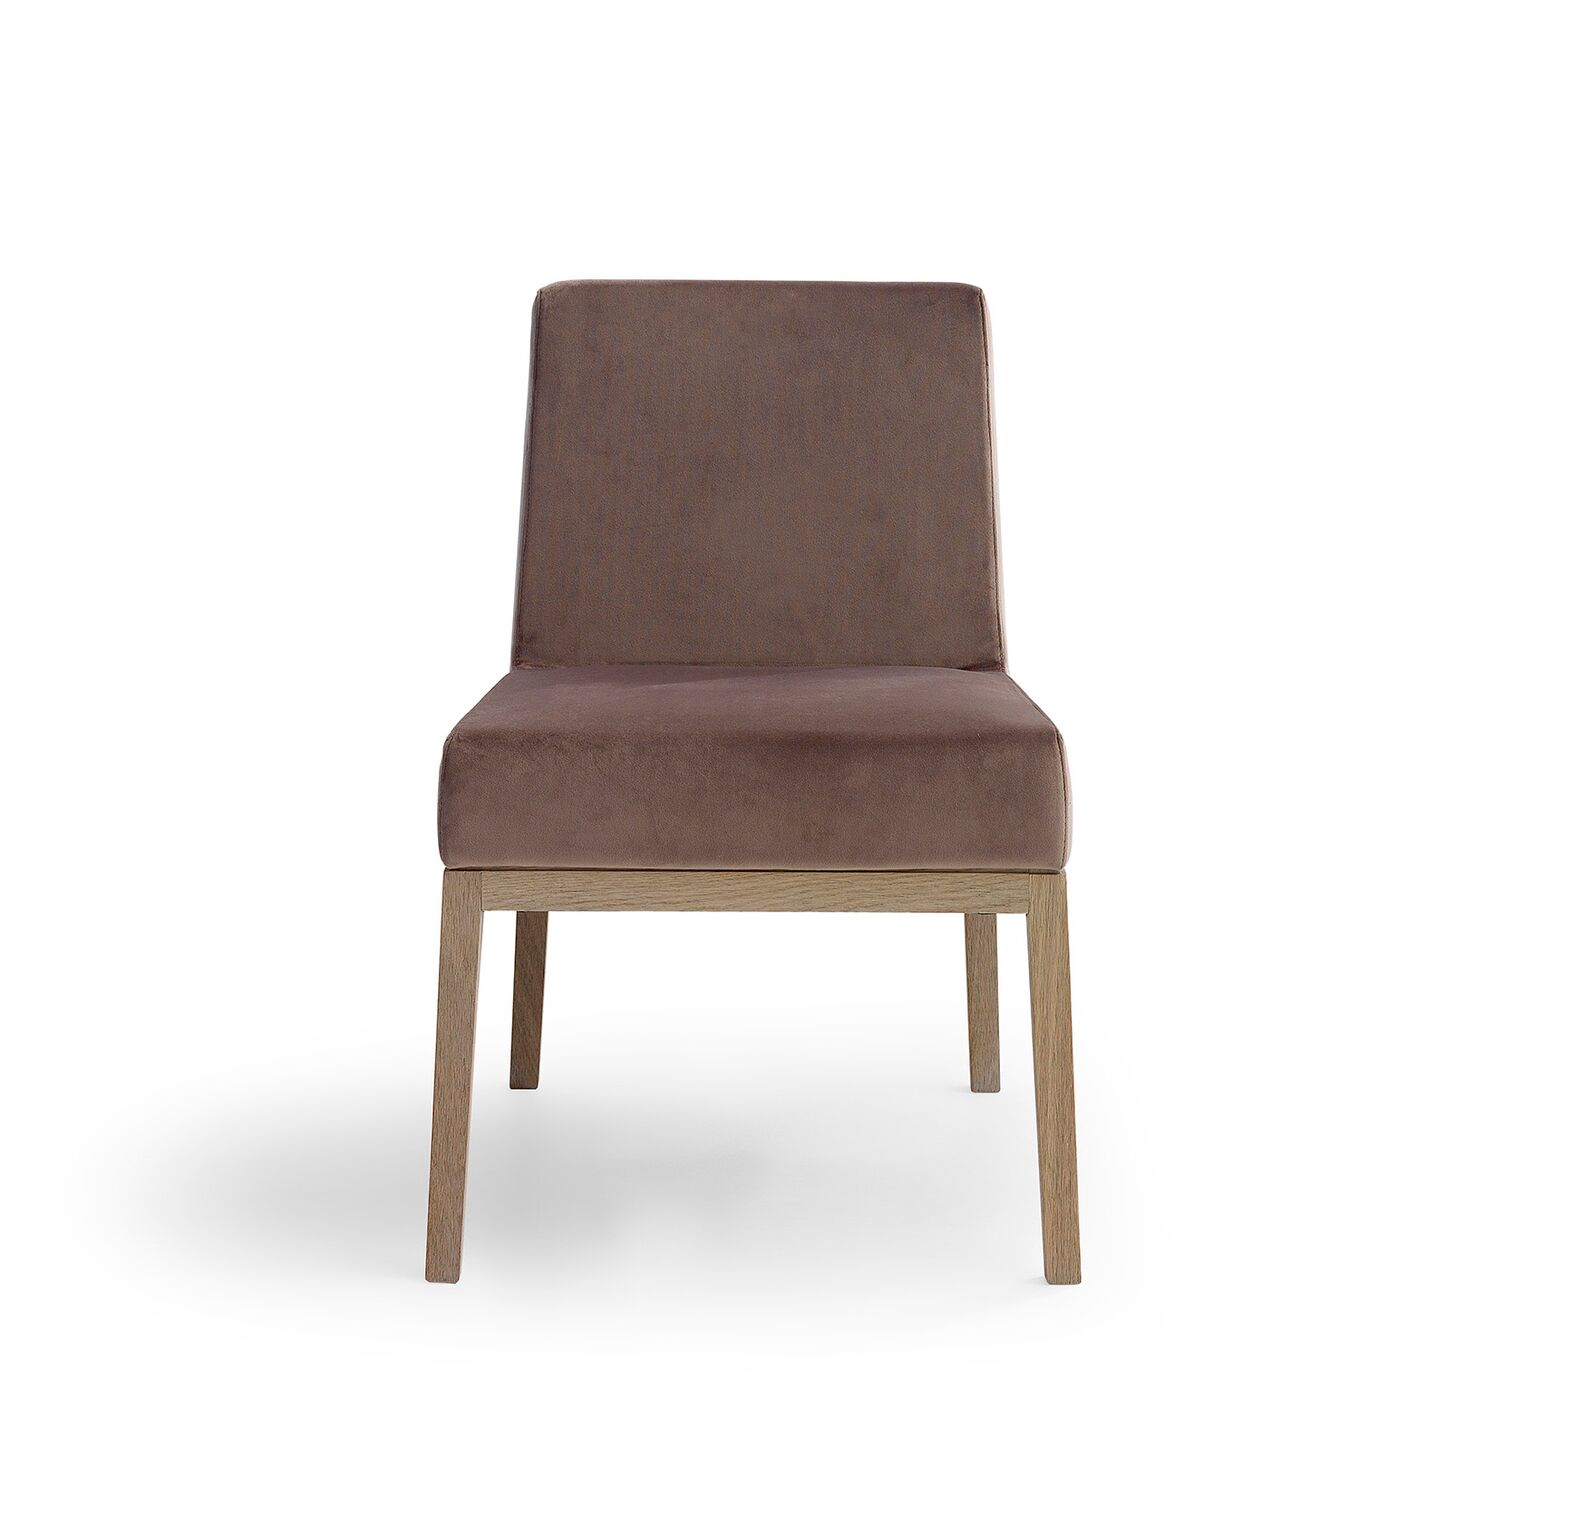 Planum Mobil Fresno InteriVision Ala dining chair